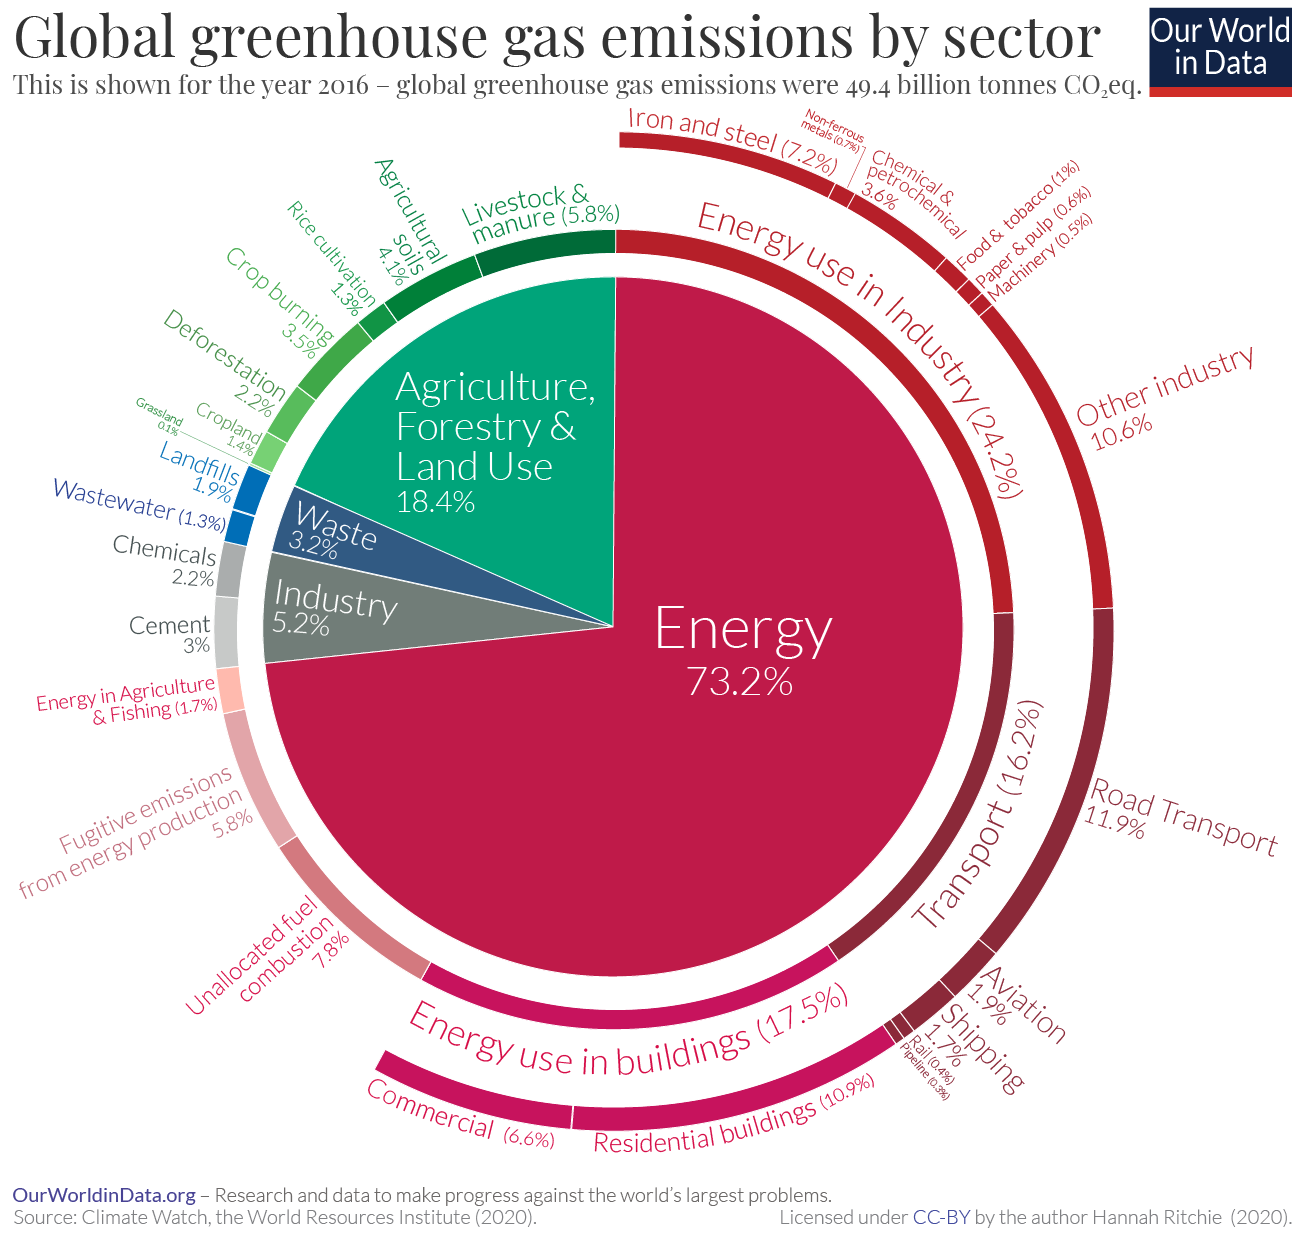 Carbon emissions by sector